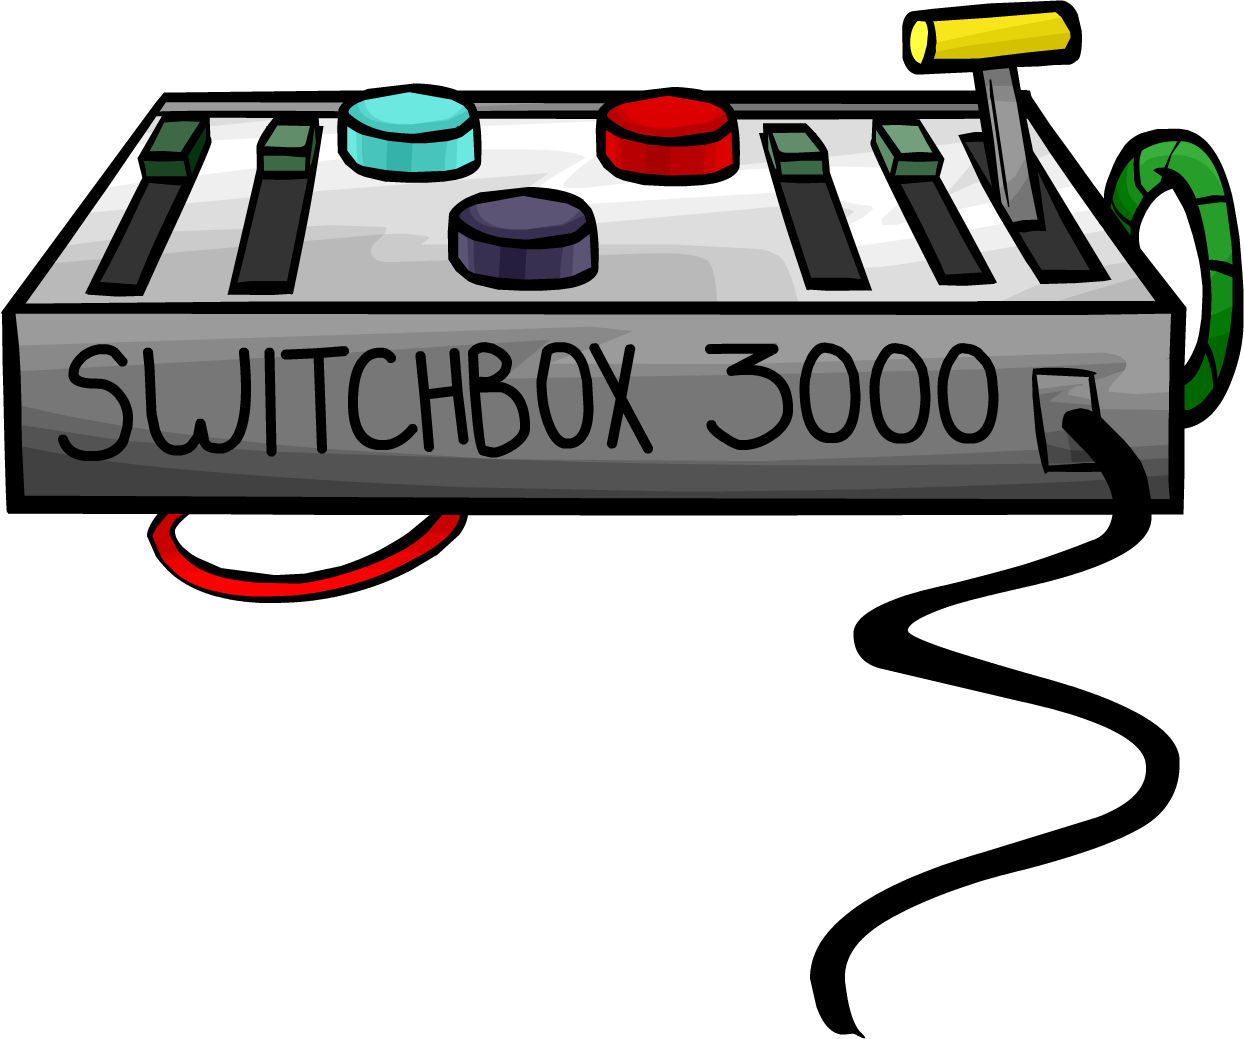 Switchbox 3000.png